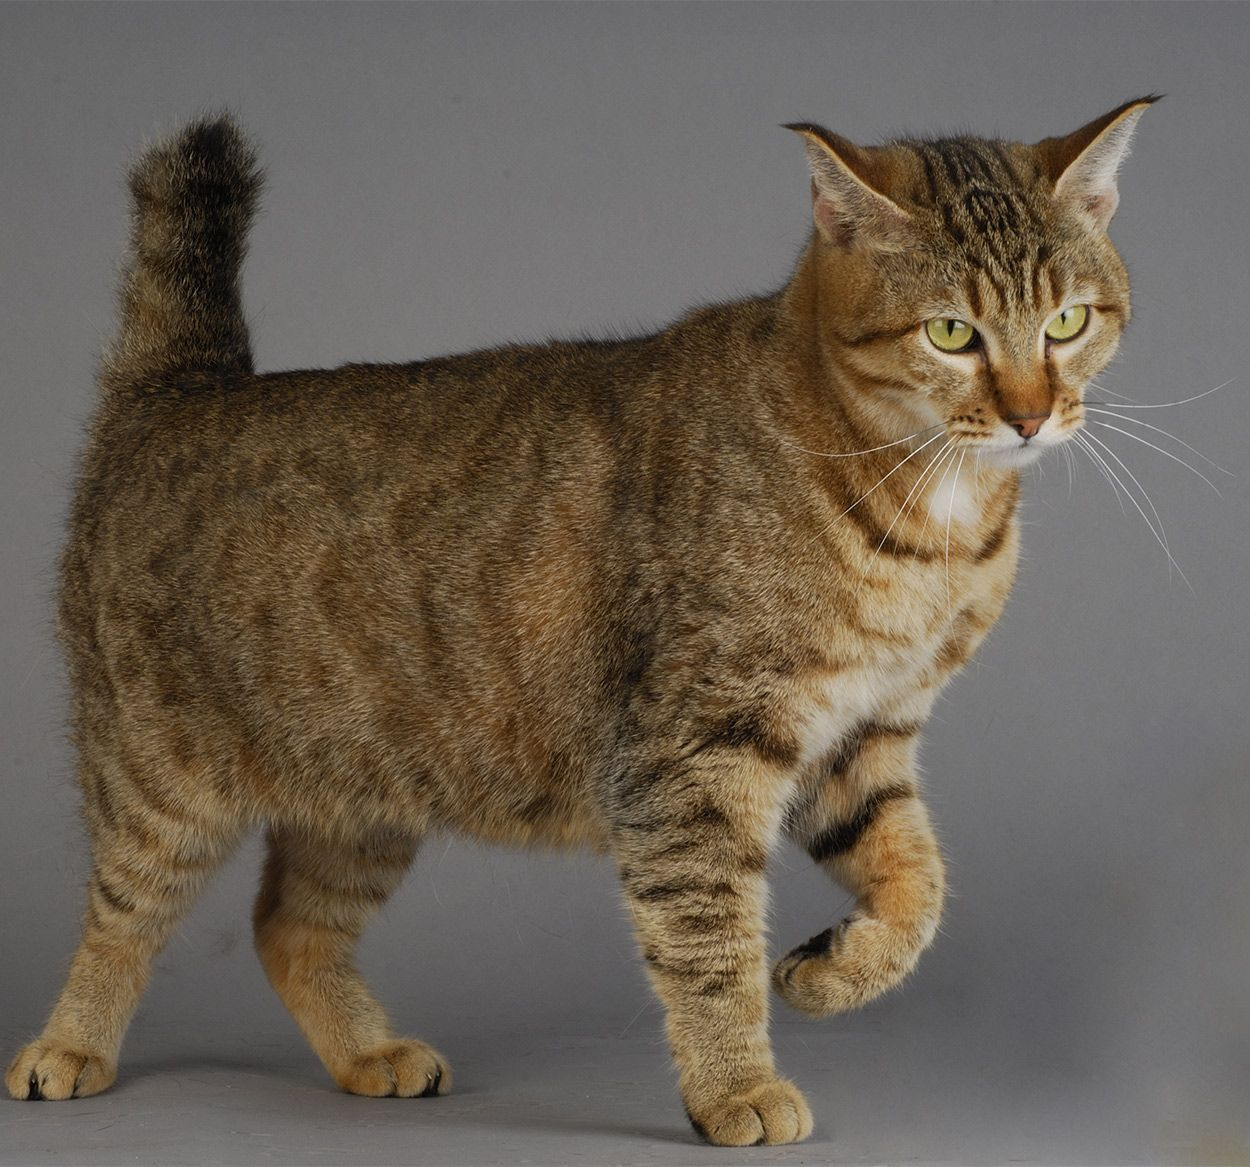 Pixie Bob Cat A Comprehensive Guide From The Happy Cat Site Domestic Cat Breeds Pixie Bob Cats Cat Breeds